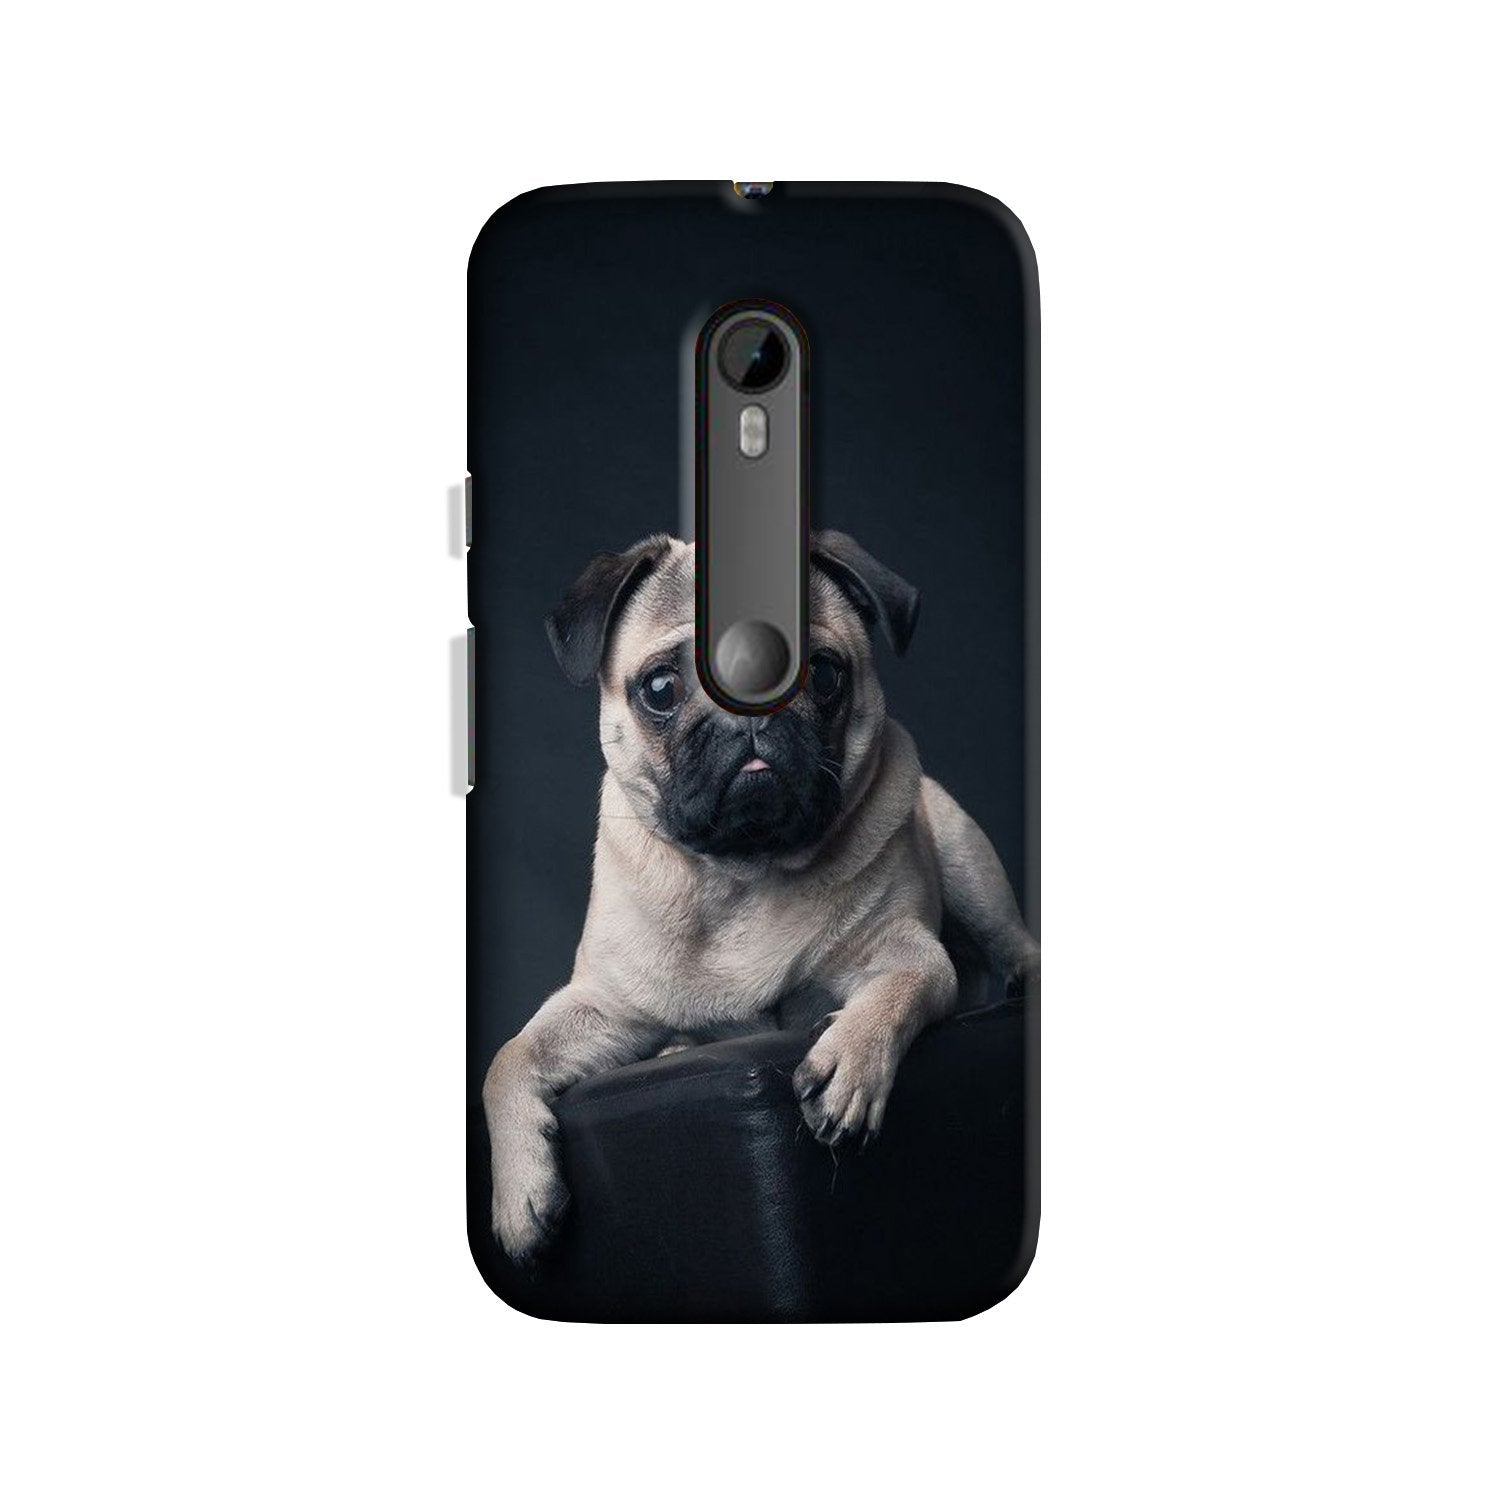 little Puppy Case for Moto G 3rd Gen